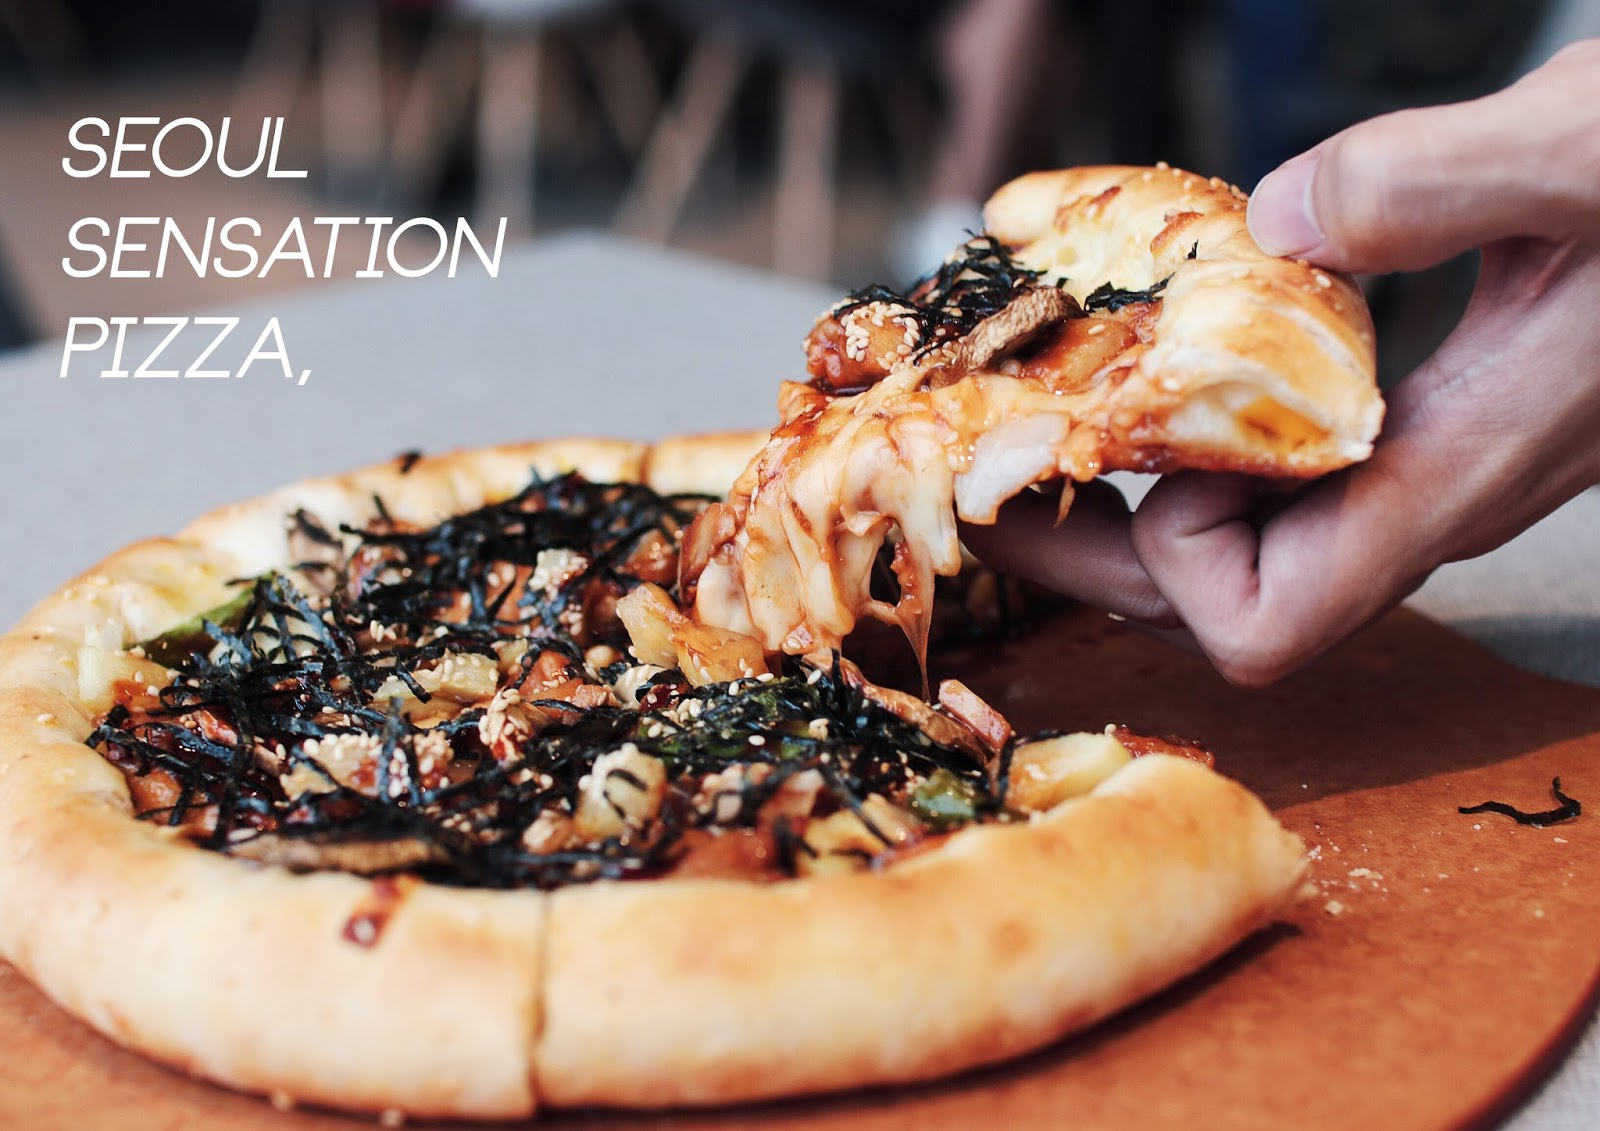 seoul sensation pizza, pizza hut, price